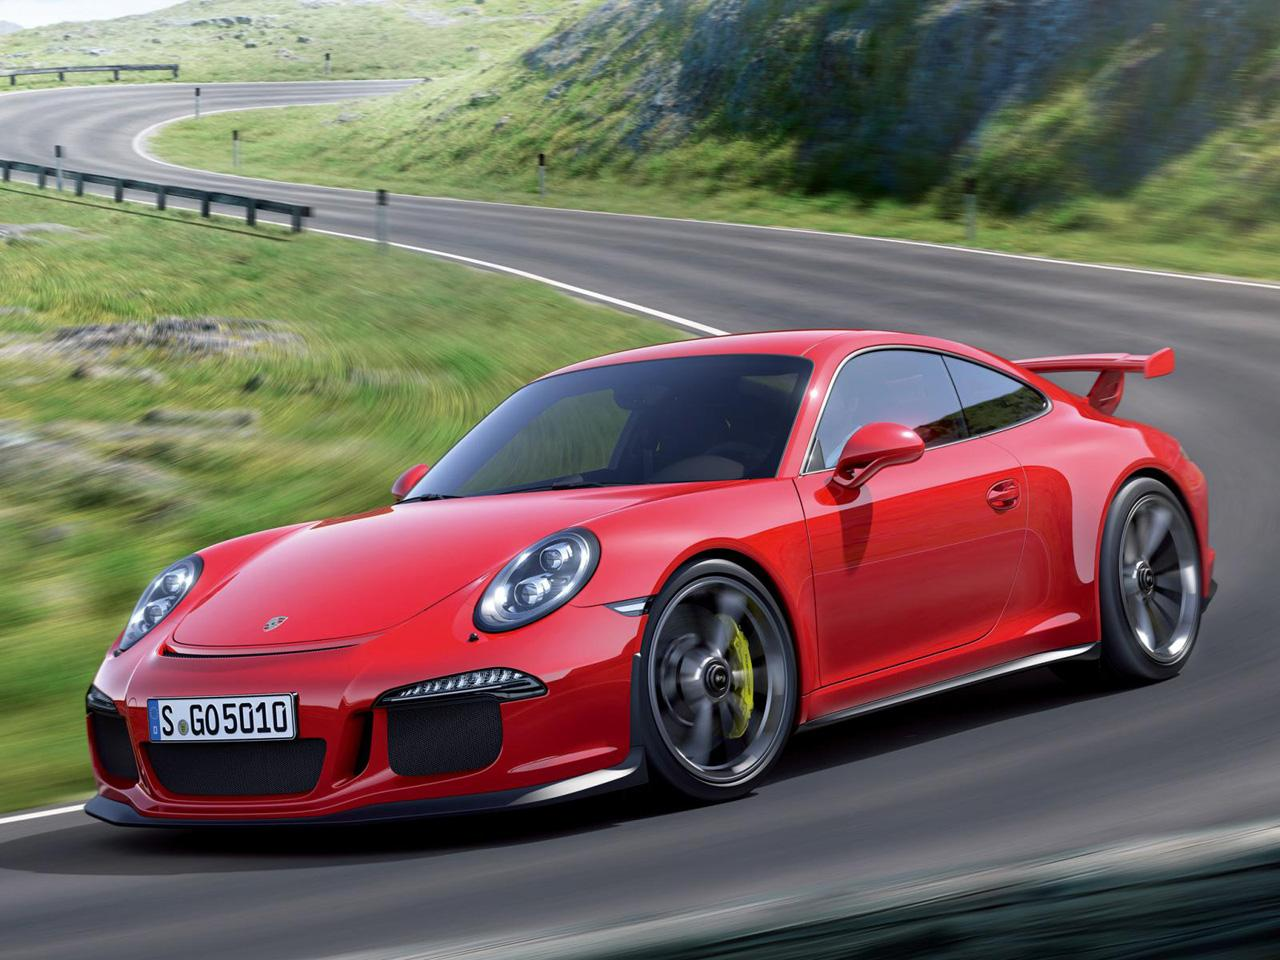 Porsche 911 Gt3 Rs Details Revealed Digital Trends